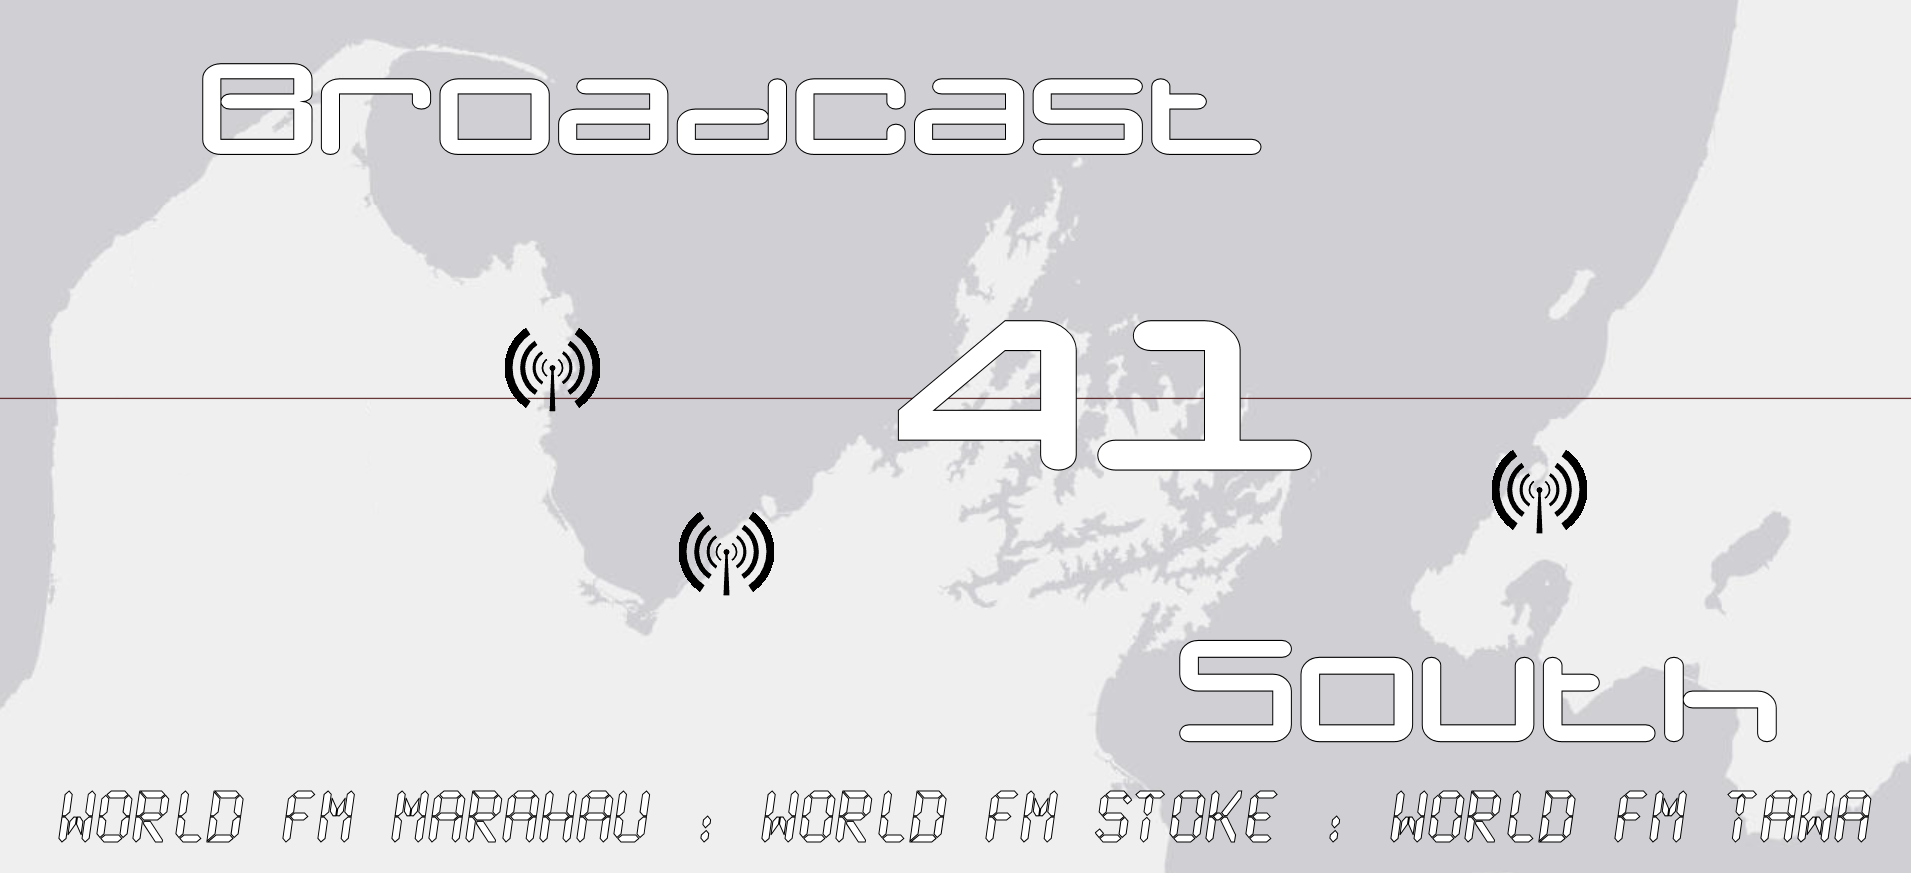 Broadcast 41 South